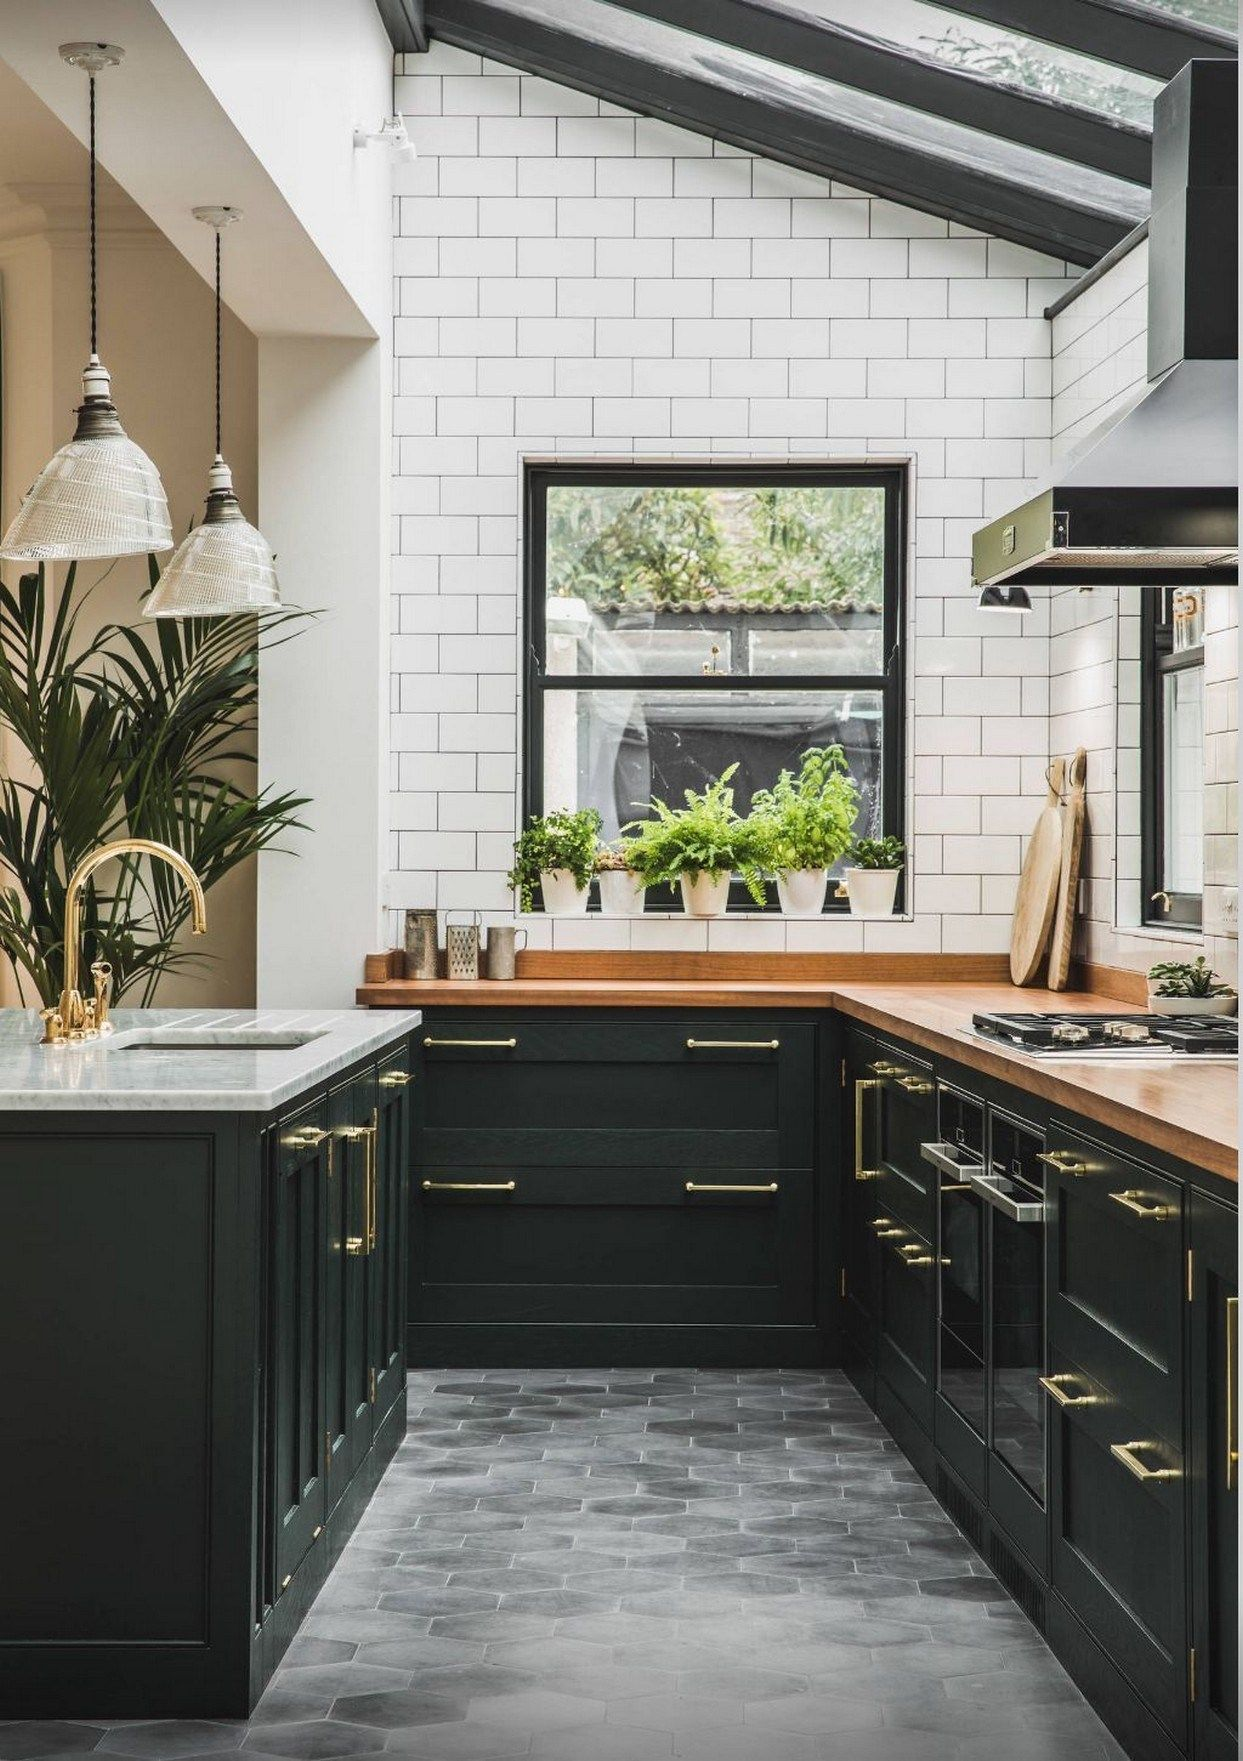 112 easy simple kitchen design ideas you must try 12   Cuisine ...